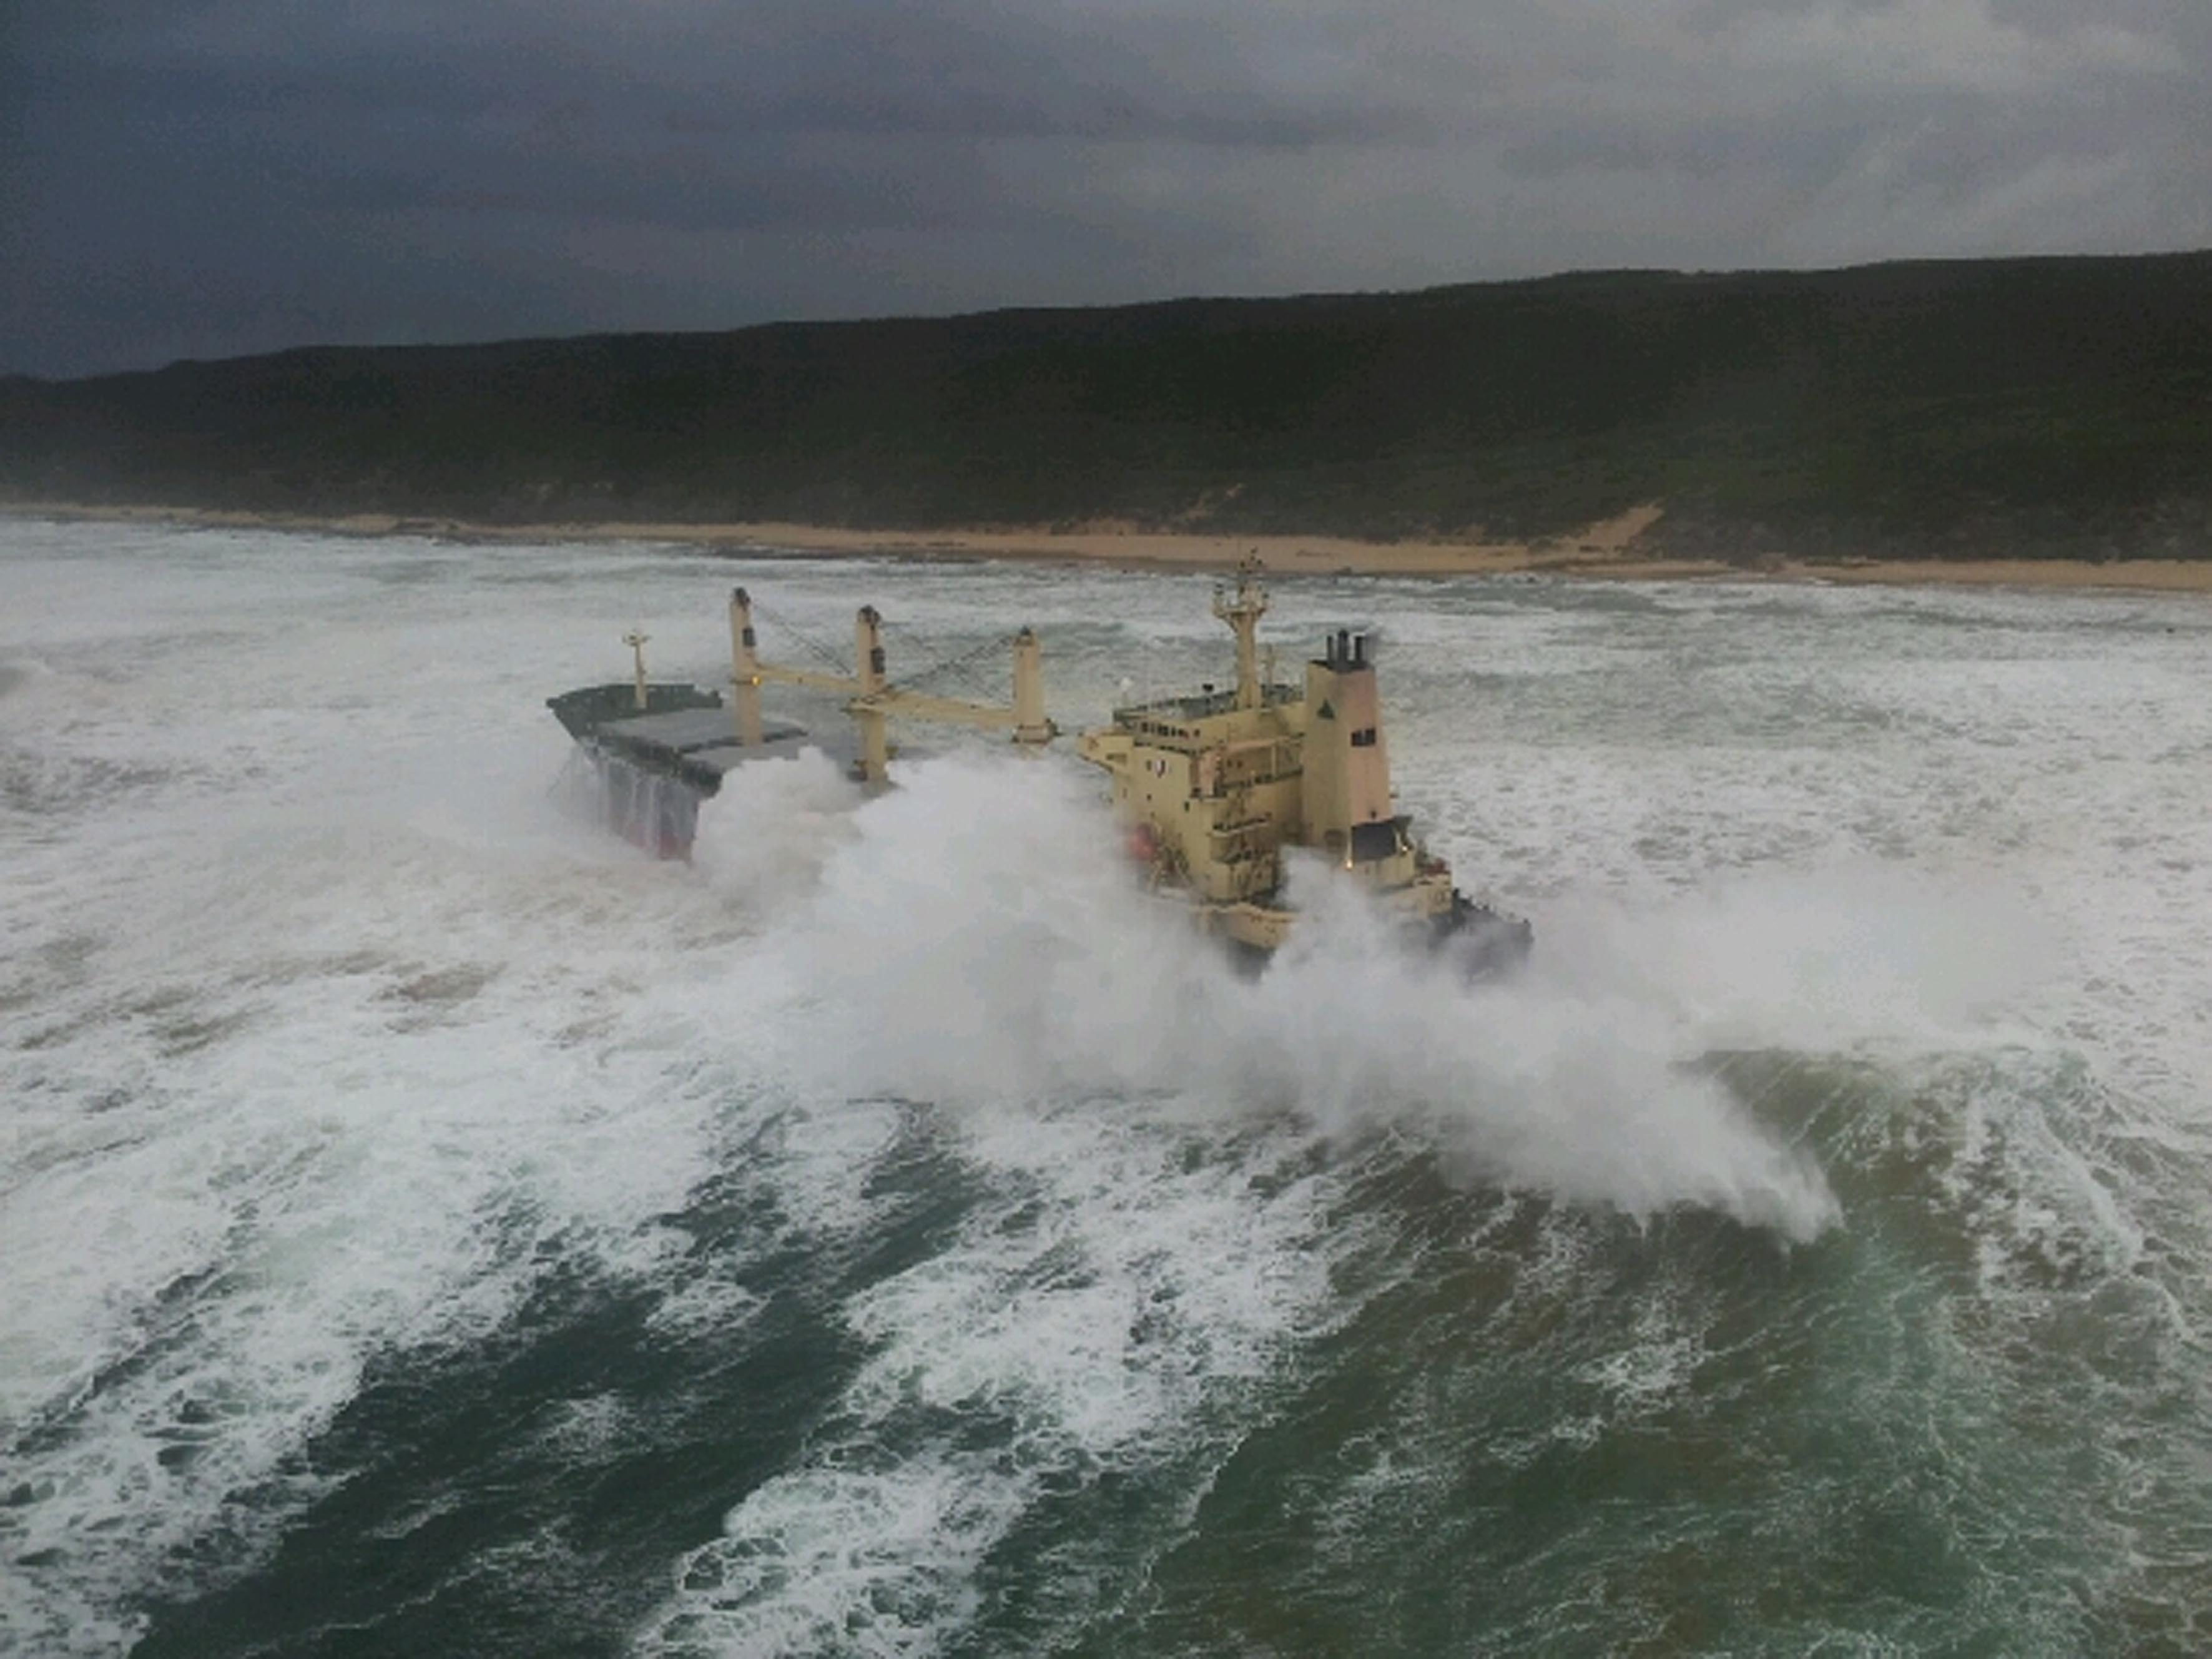 All 19 crew members were safely lifted ashore after being rescued off the ship KIANI SATU. They were airlifted off the ship by a Titan helicopters Sikorski 76 helicopter. Picture NSRI